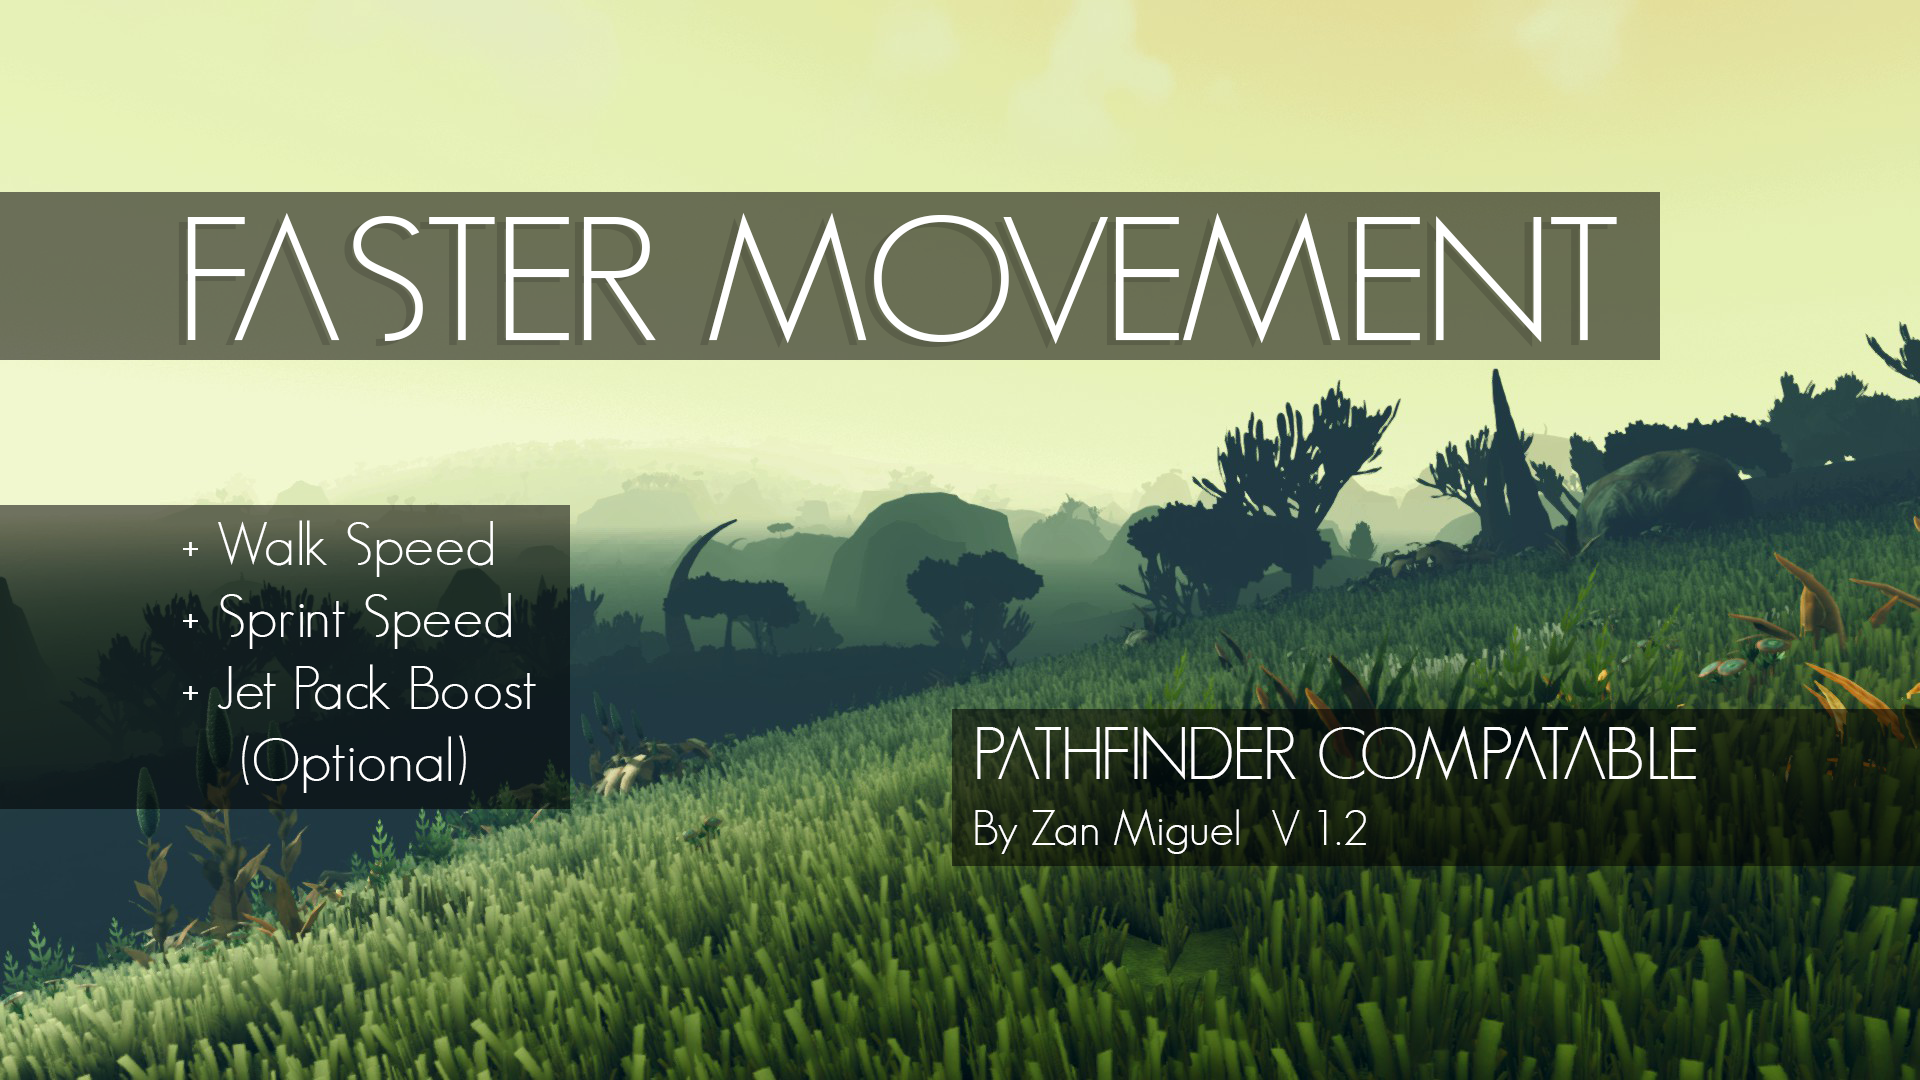 Faster Movement